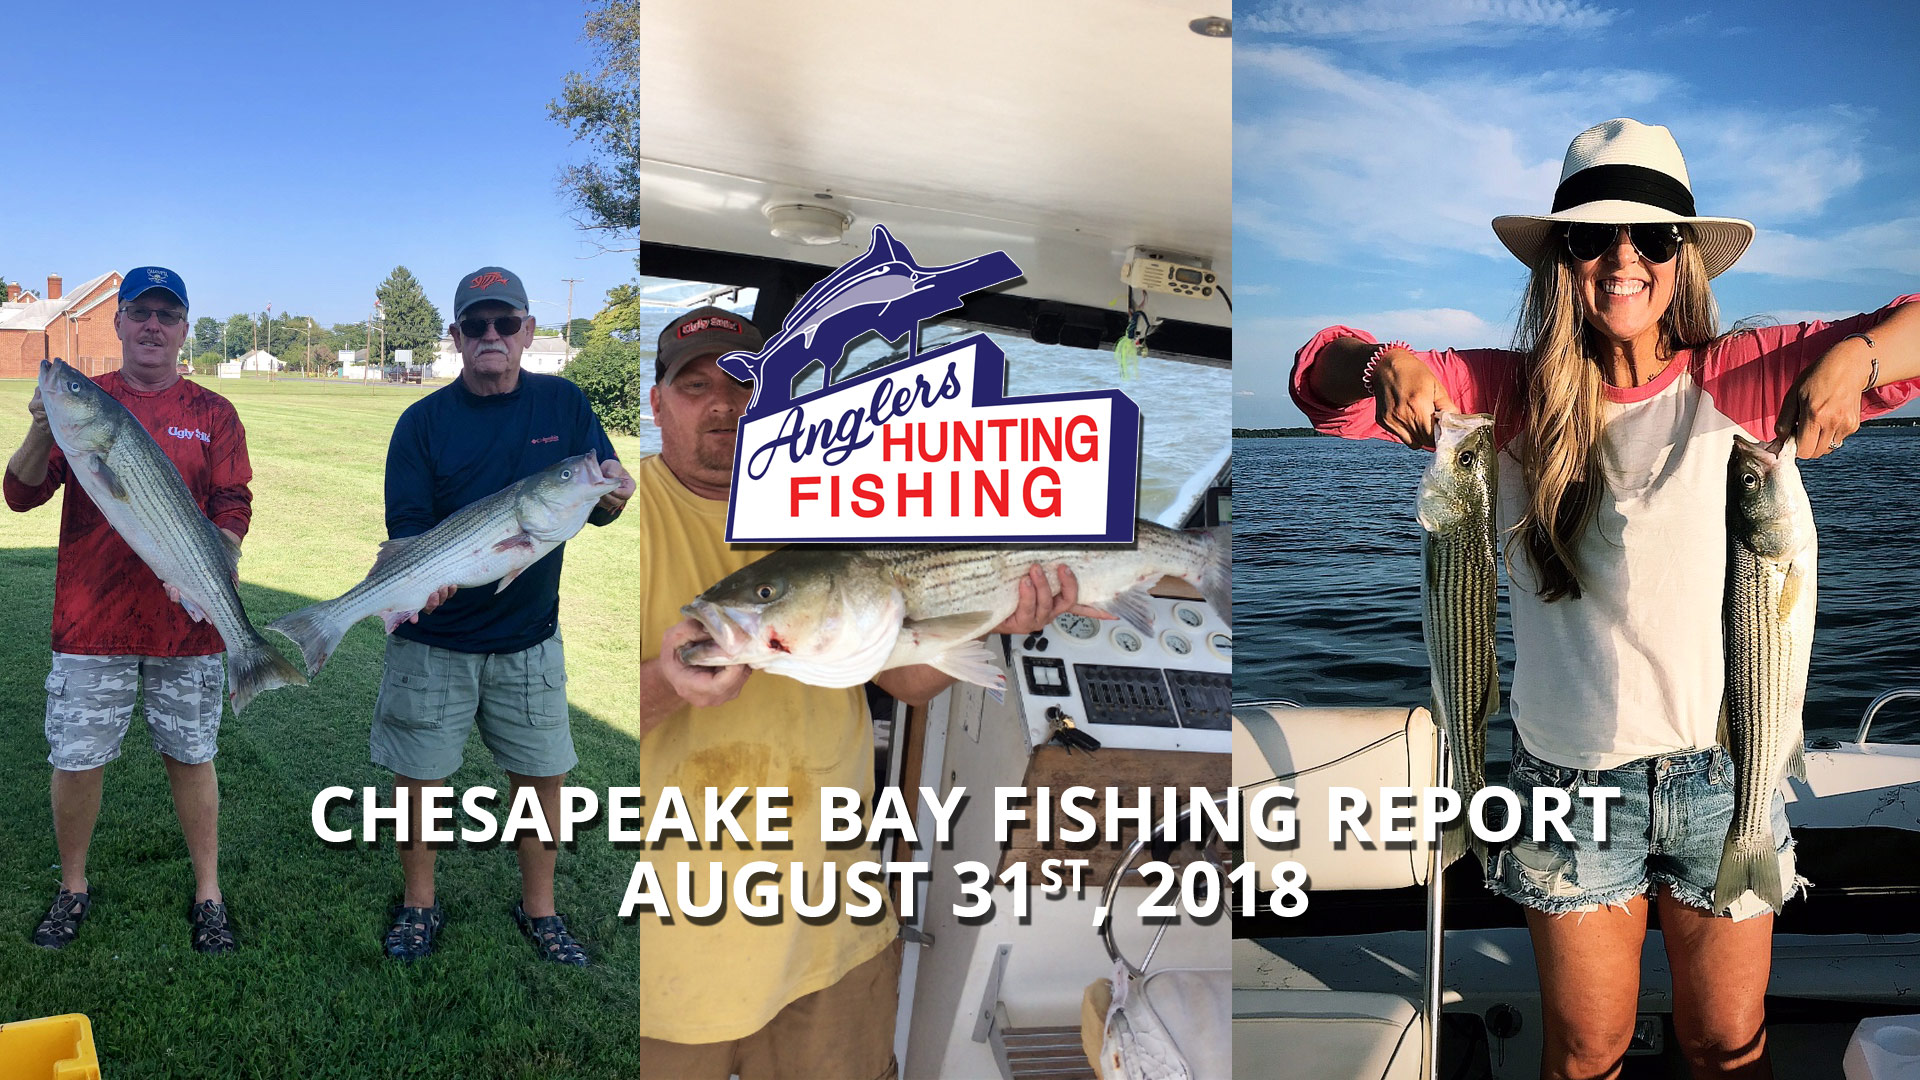 Chesapeake Bay Fishing Report - August 31st, 2018